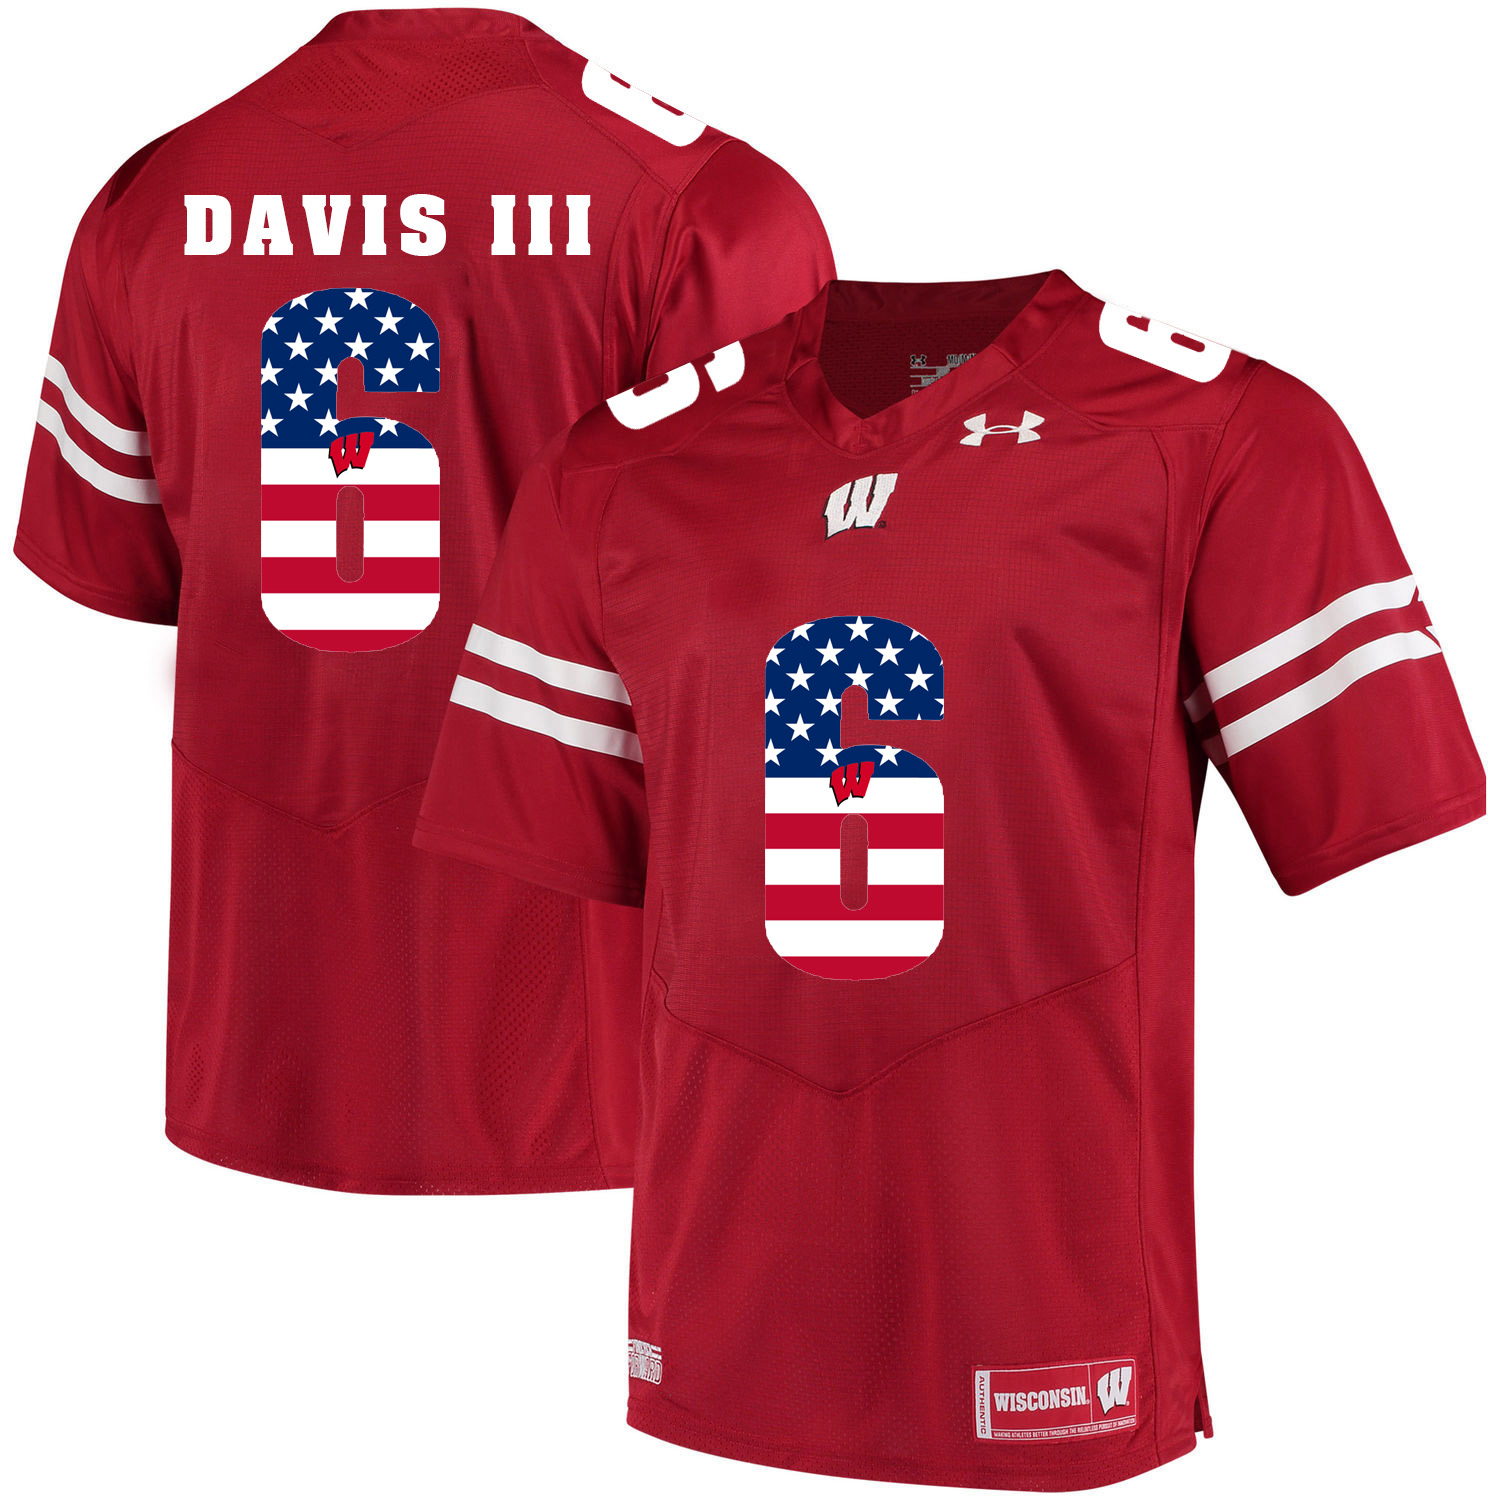 Wisconsin Badgers 6 Danny Davis III Red USA Flag College Football Jersey